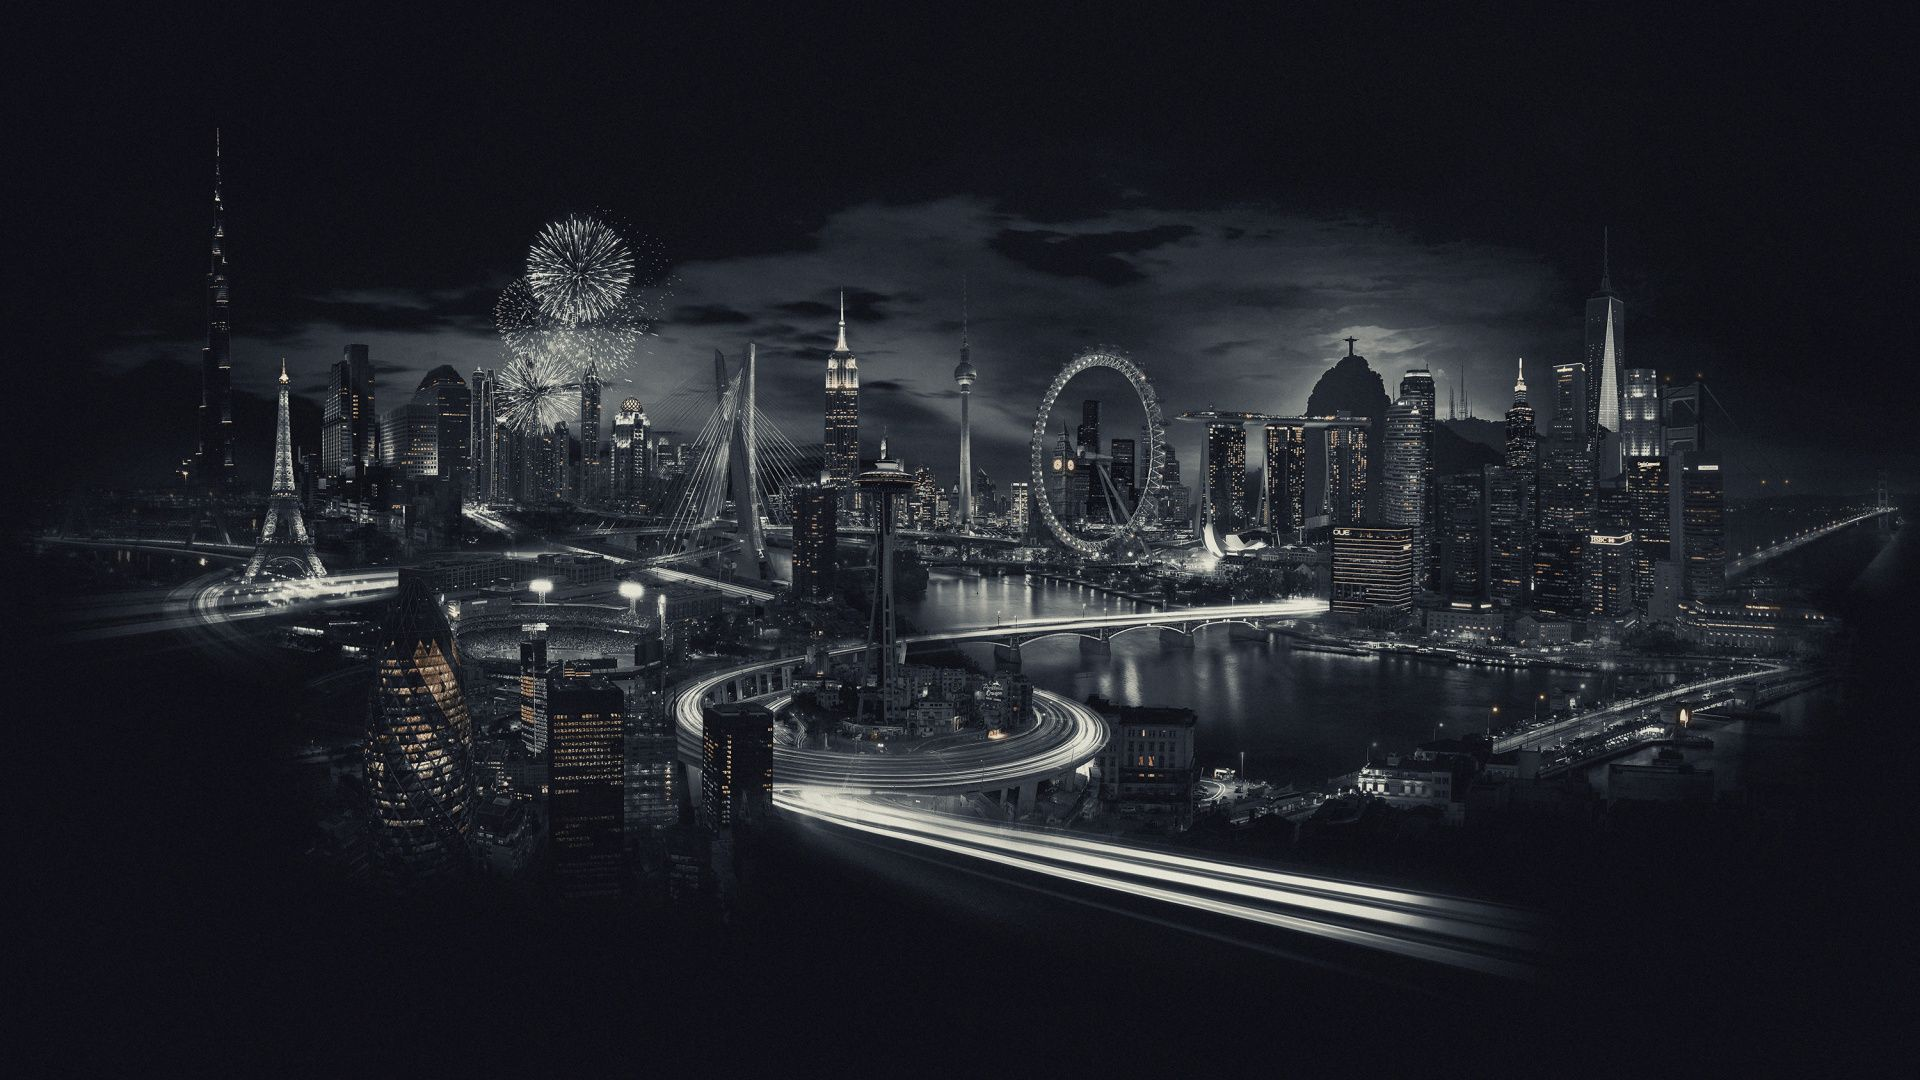 1920x1080 City Black And White Landmarks City Night Wallpaper World Cities Skyline City Skyline